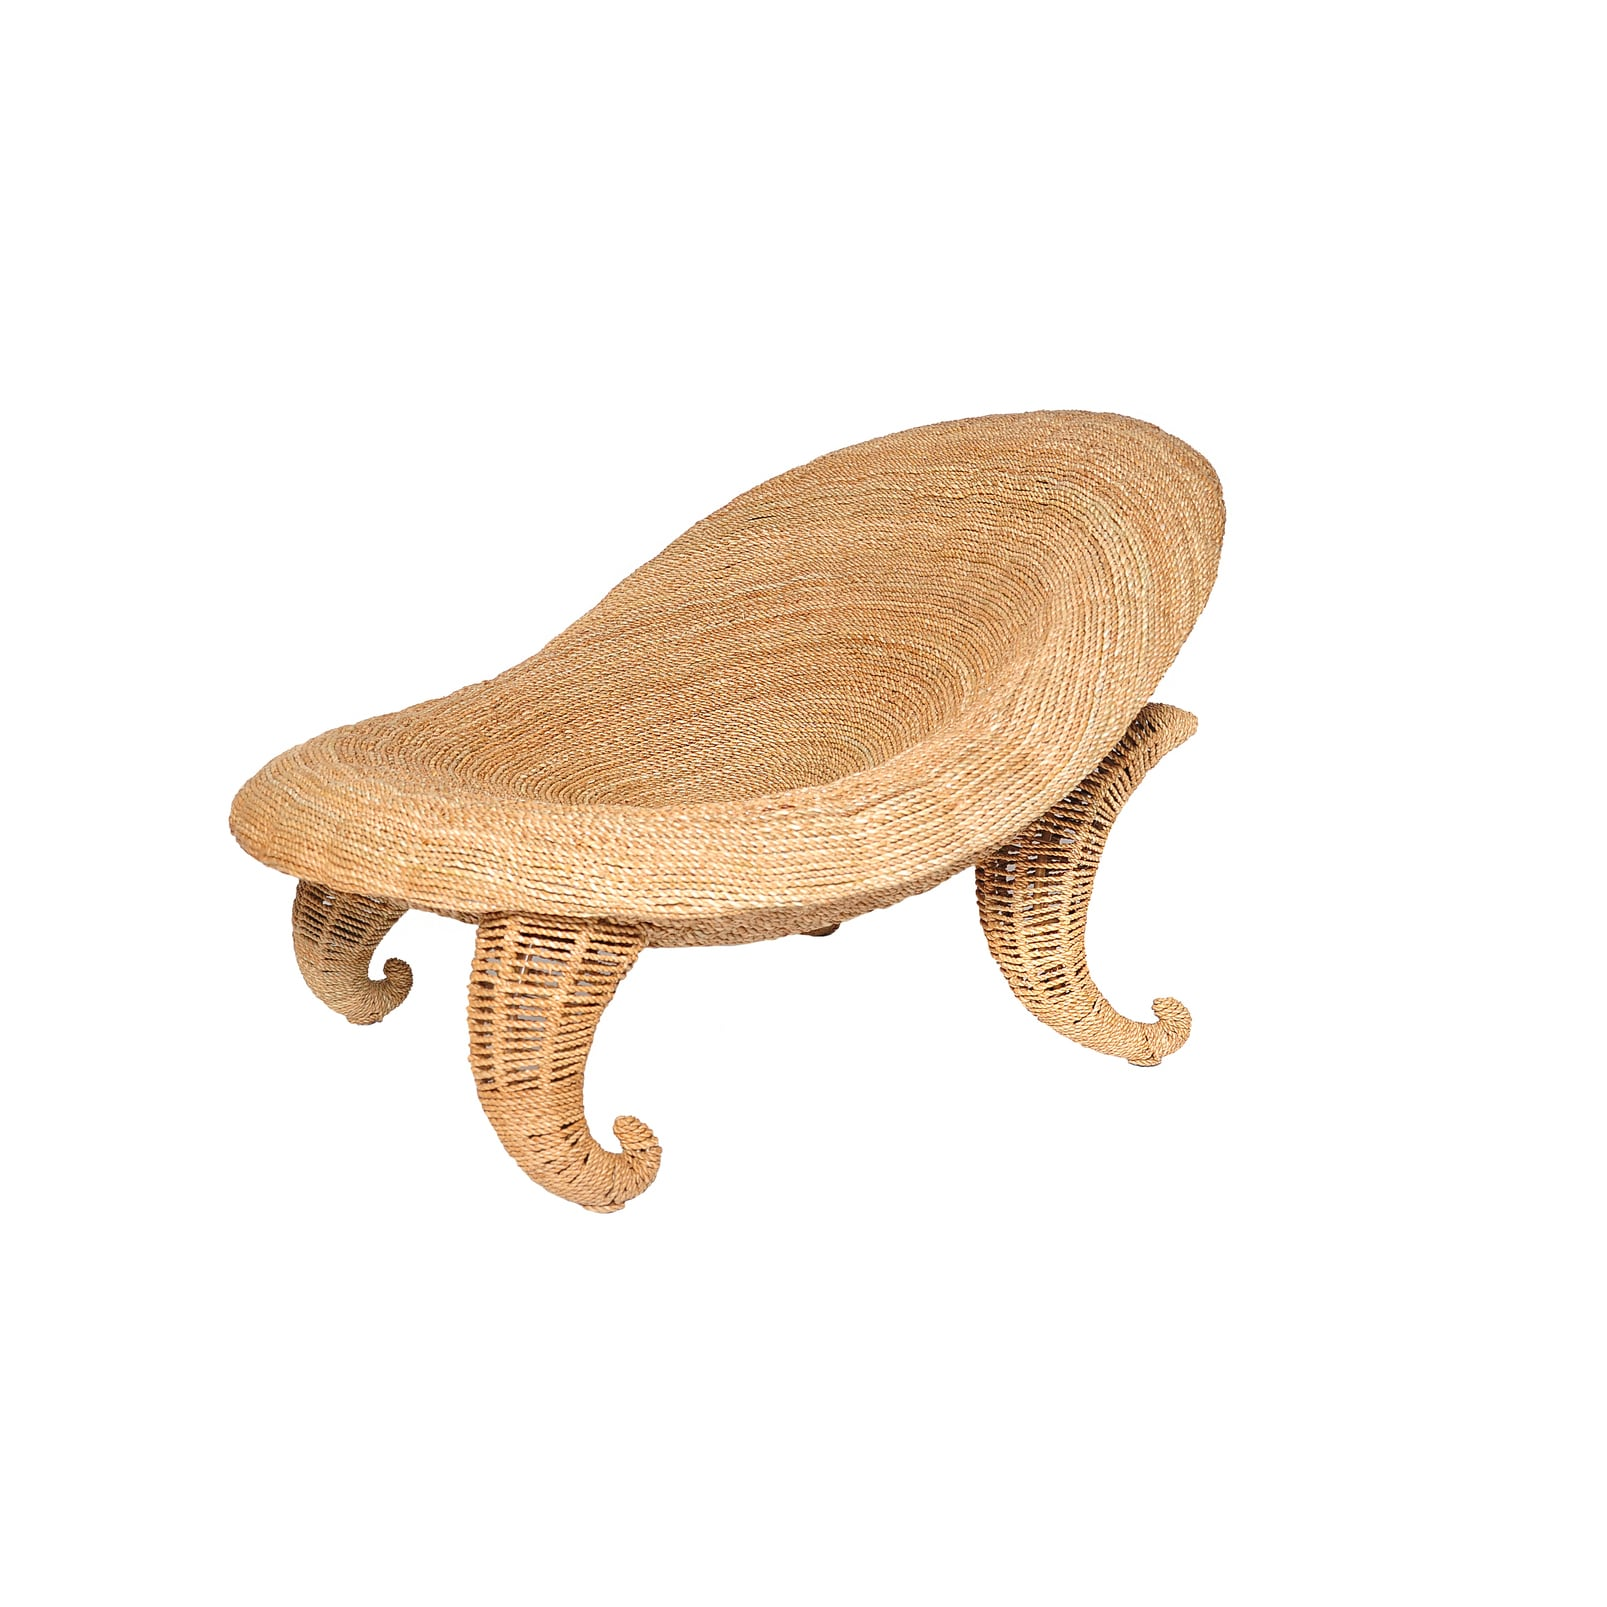 Ariel Wrought Iron and Jute Chair (Shell Chair), Beige, S...